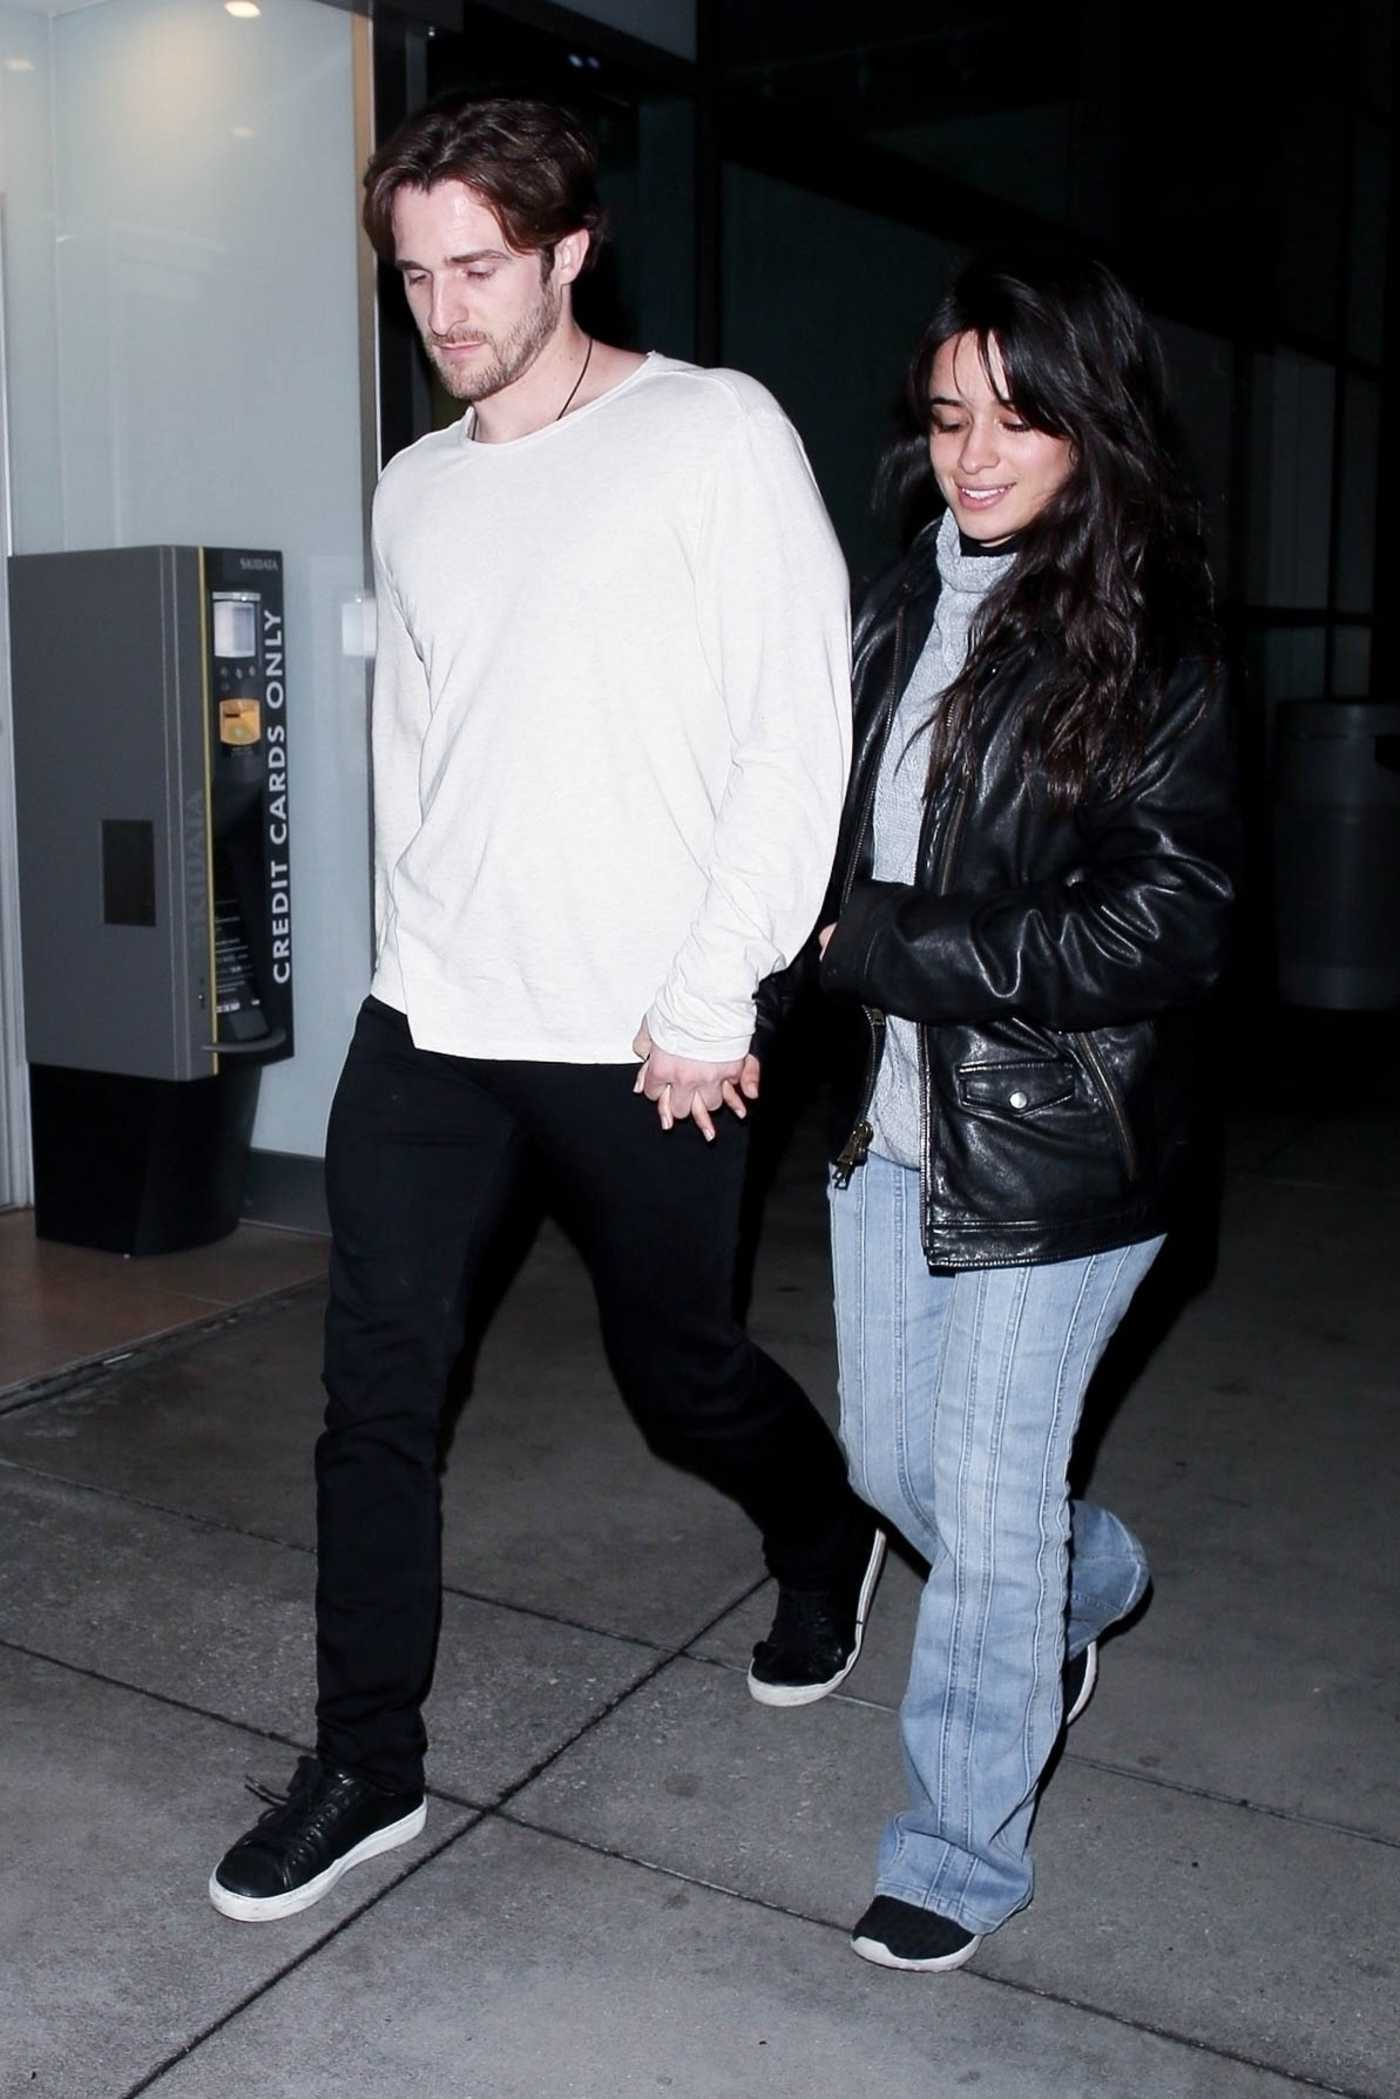 302a61baa22 Camila Cabello Arrives at ArcLight Theatre Out with Matthew Hussey ...